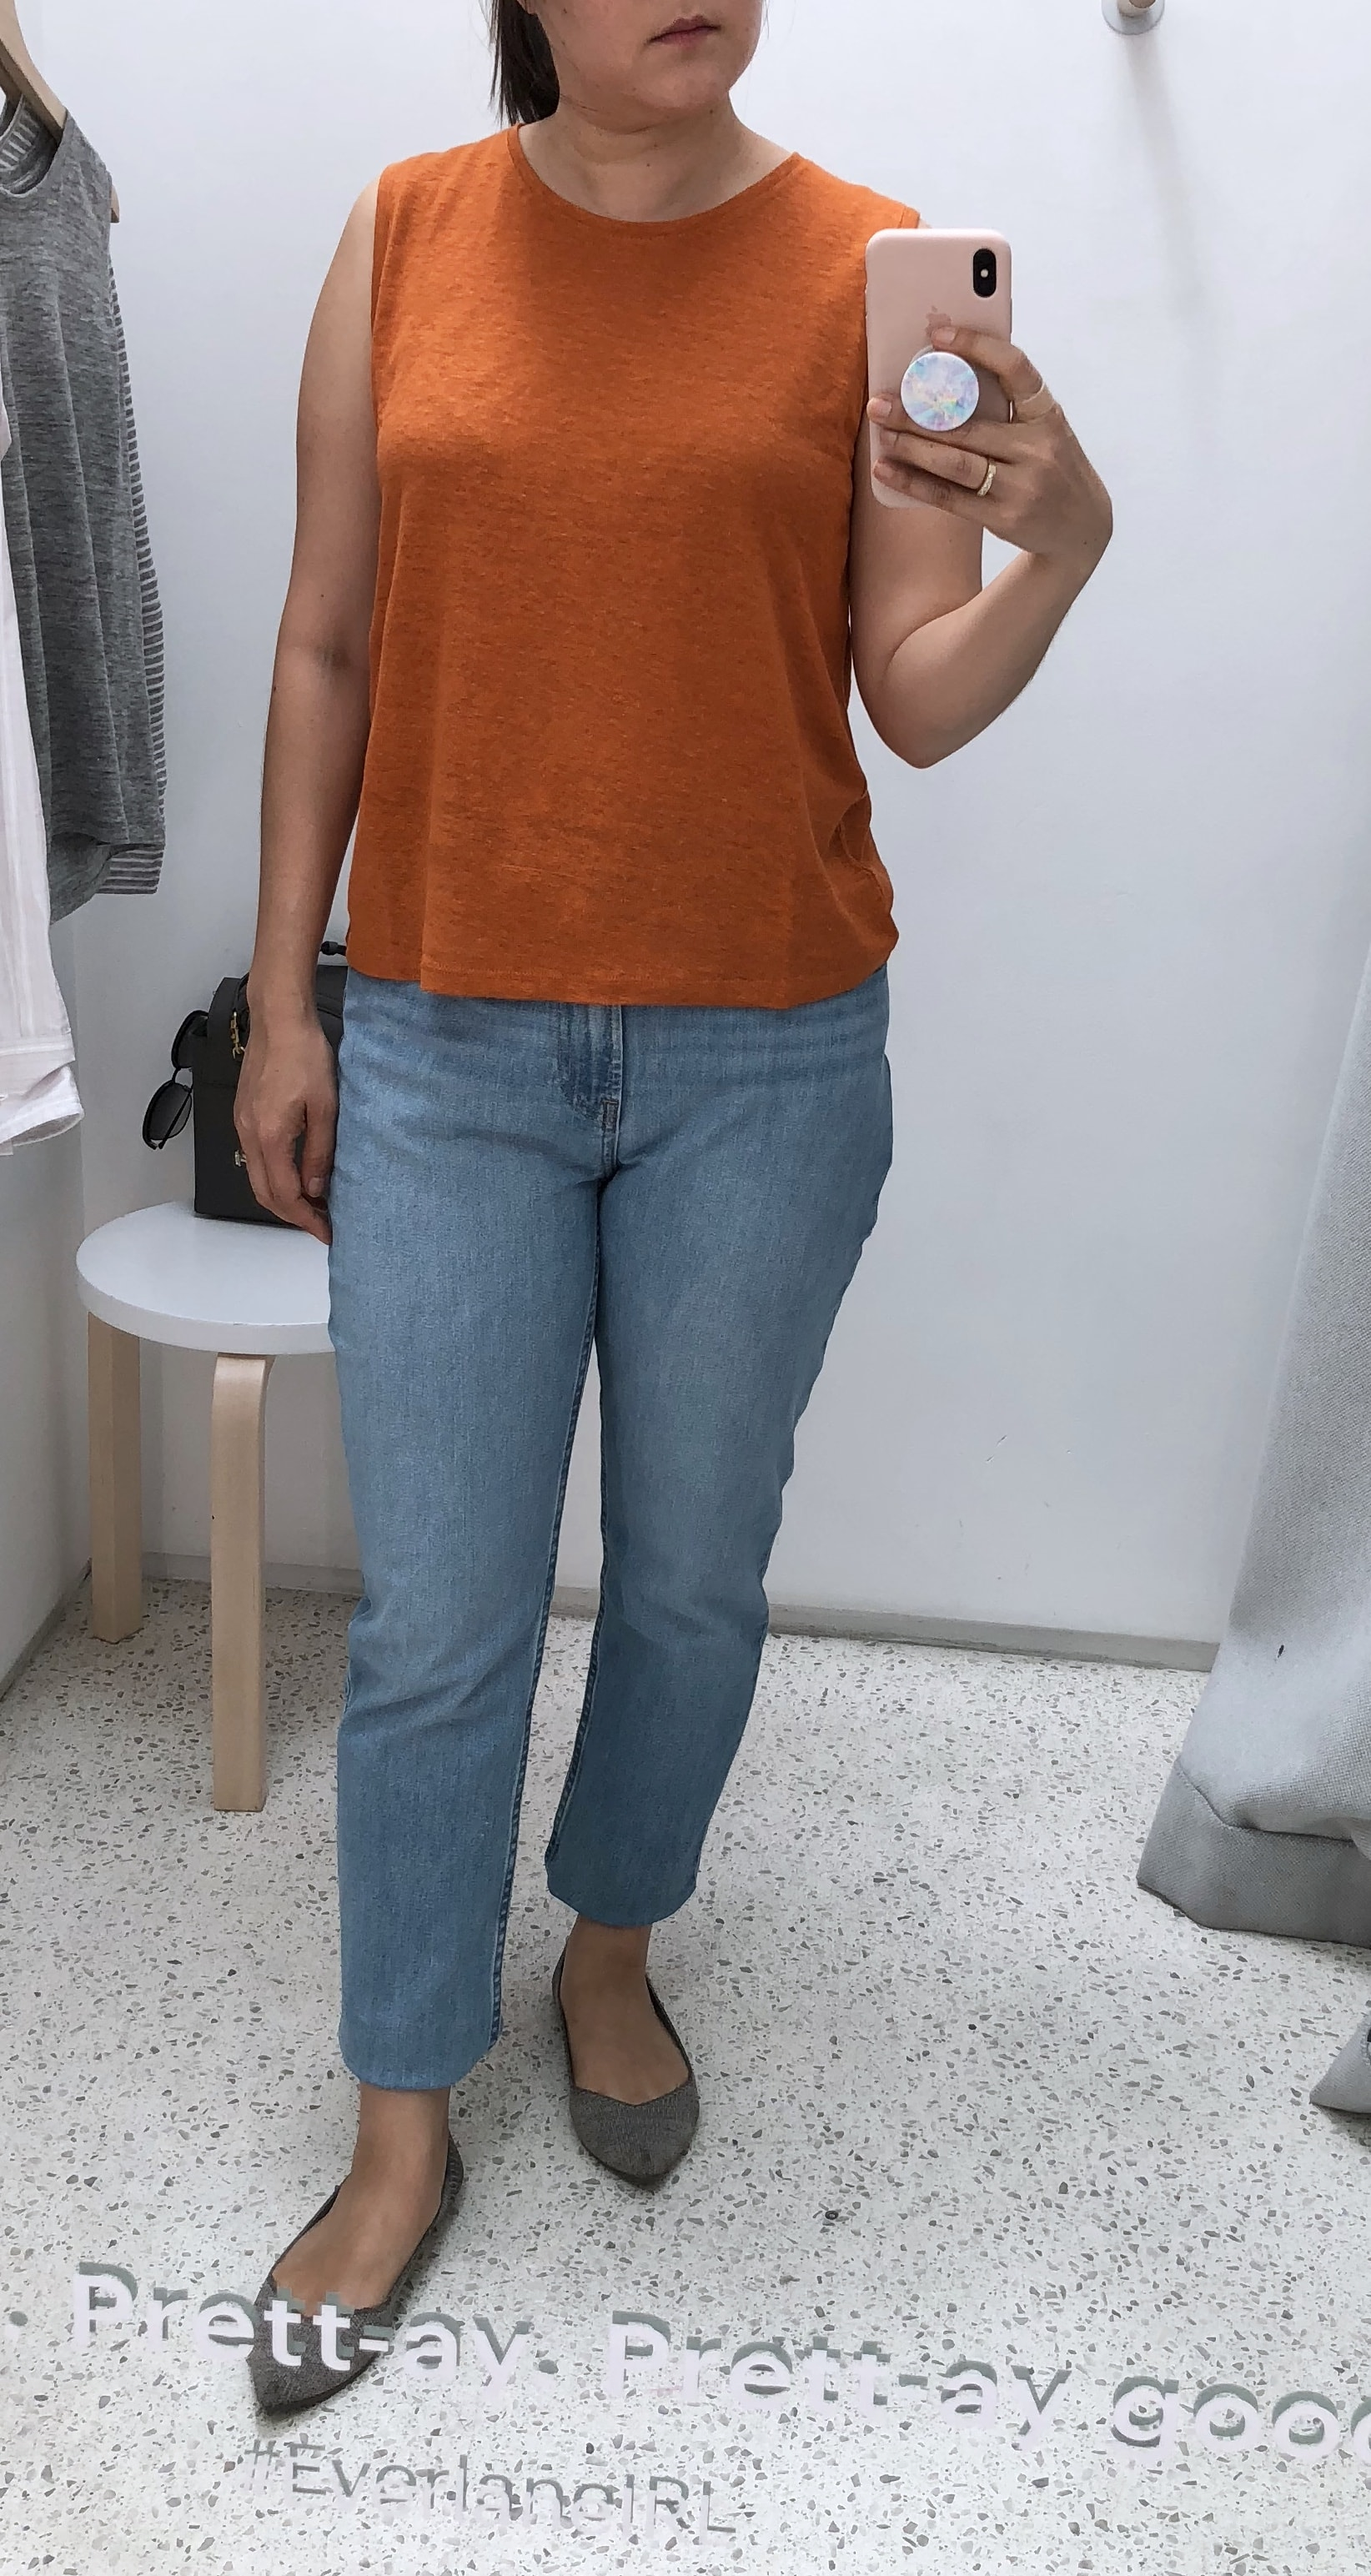 Everlane Review The Linen Muscle Tank